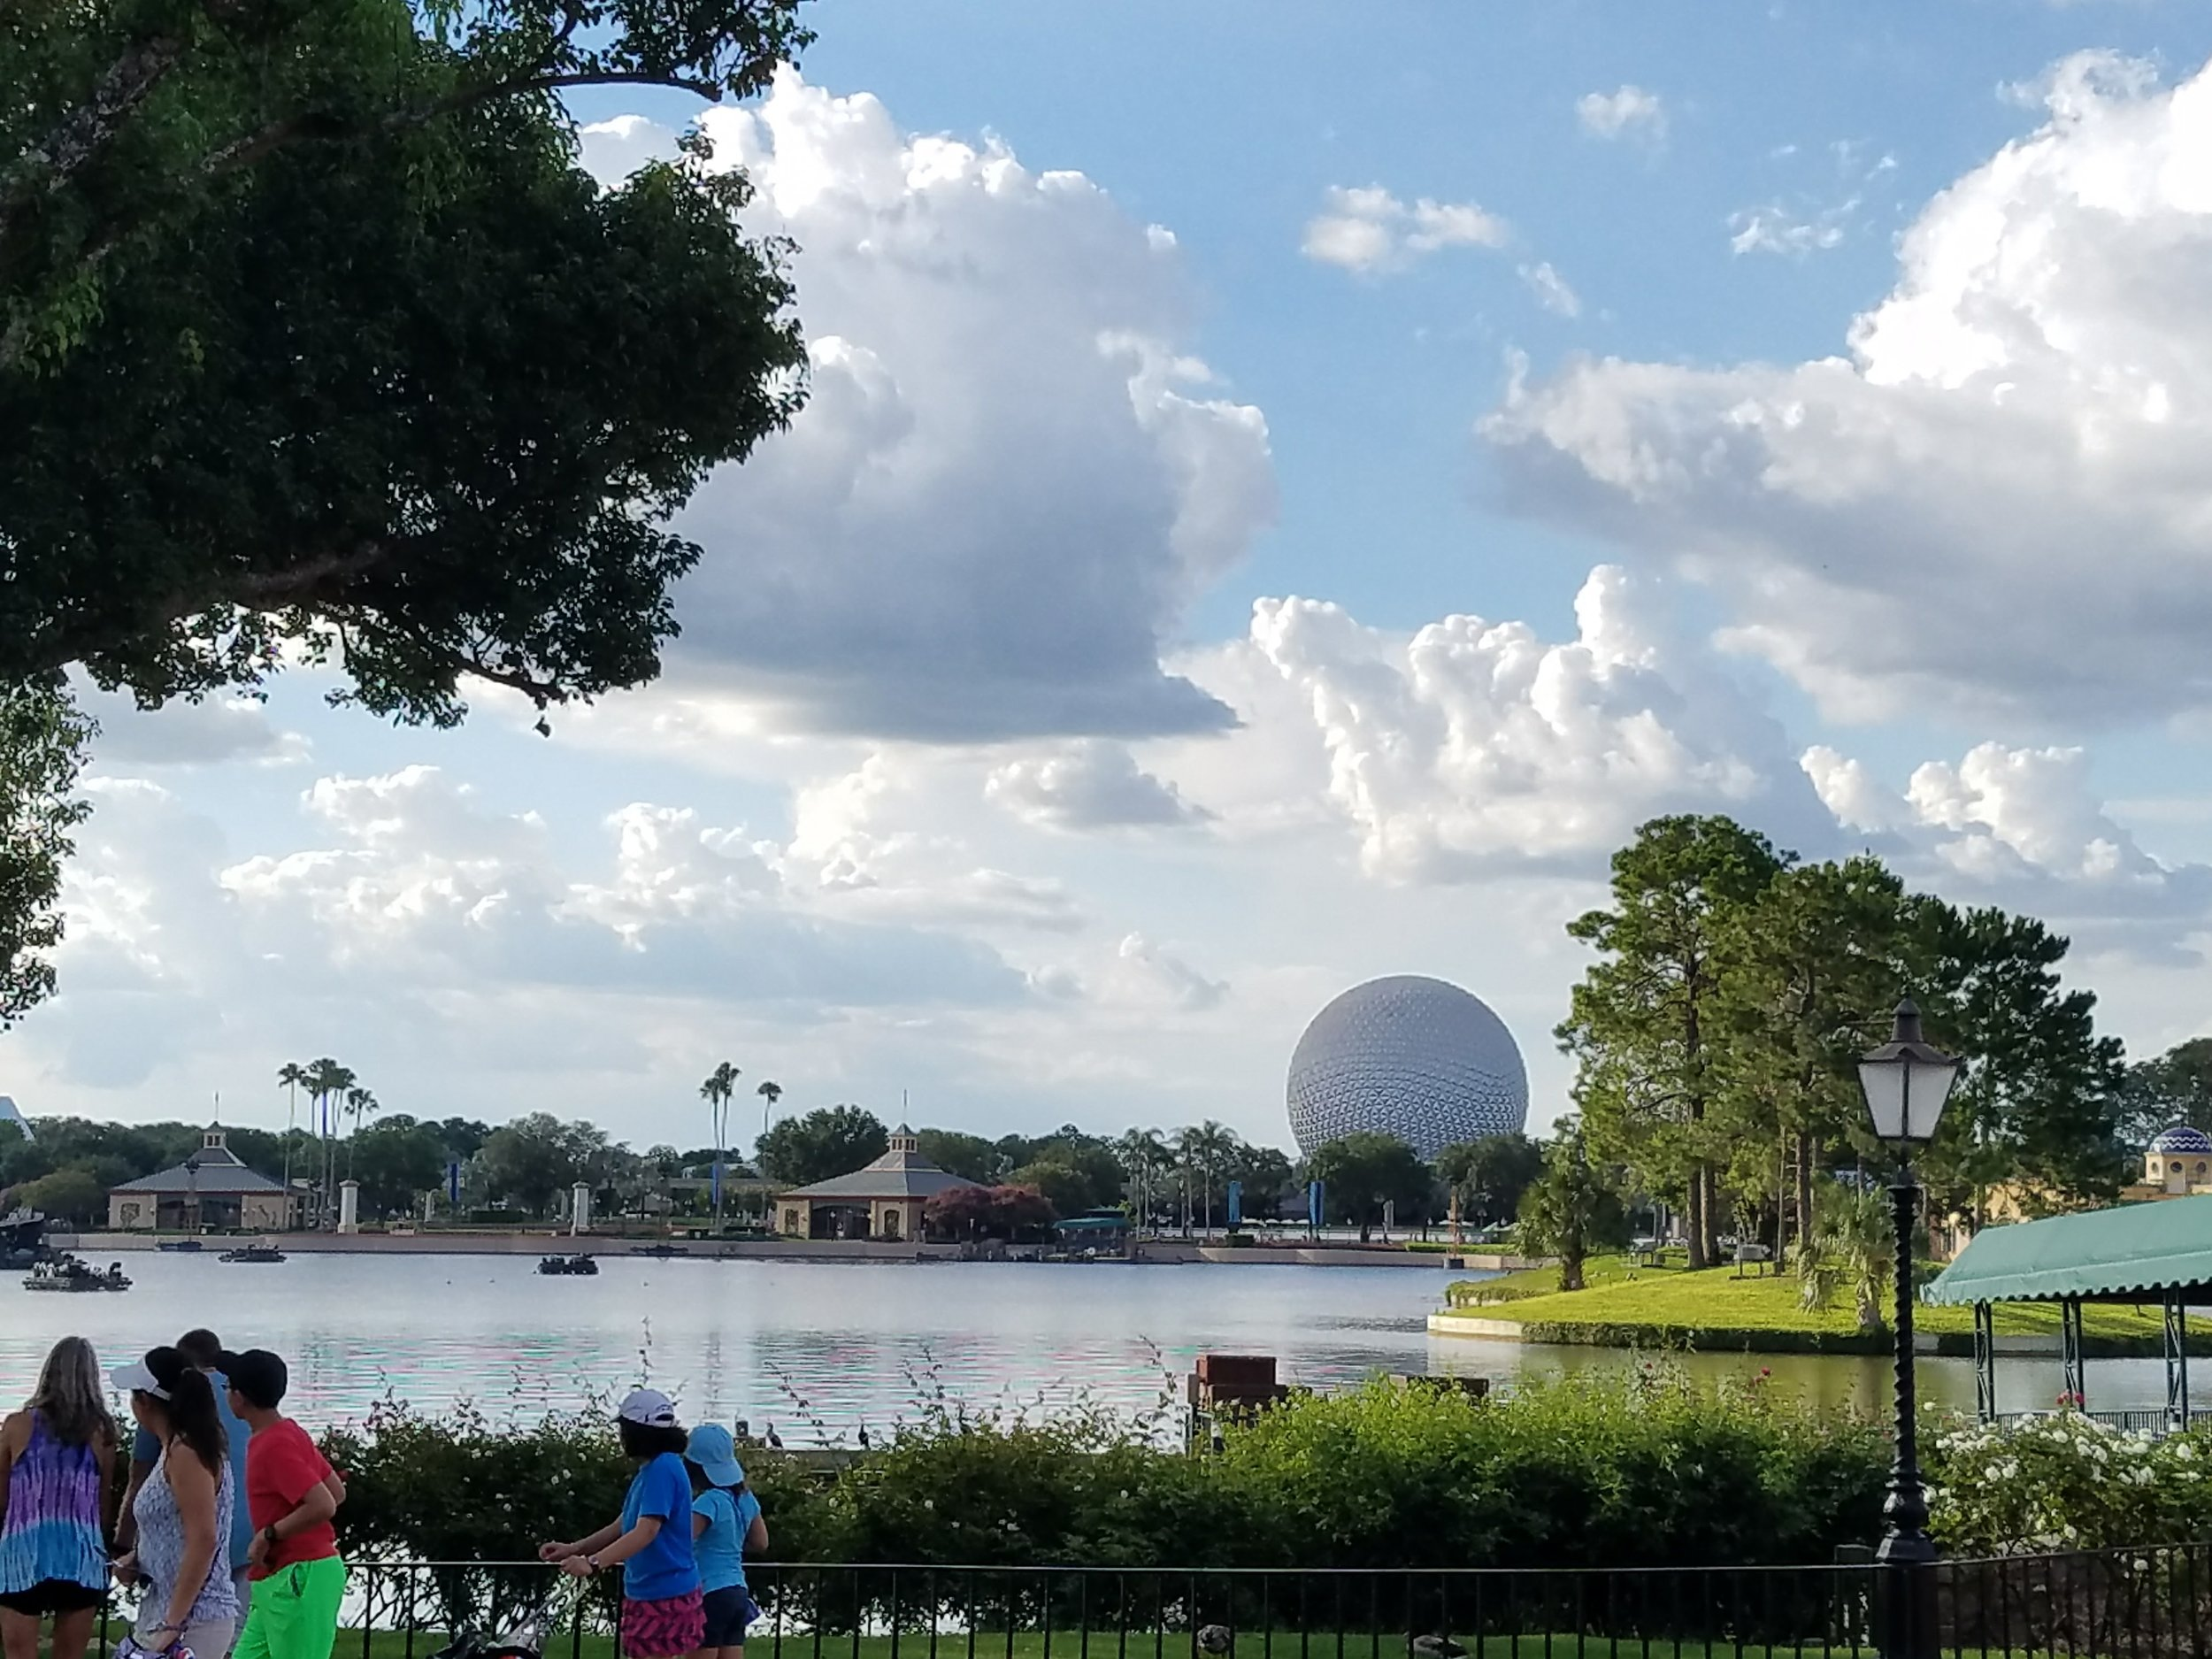 The view of Spaceship Earth from World Showcase at Epcot.